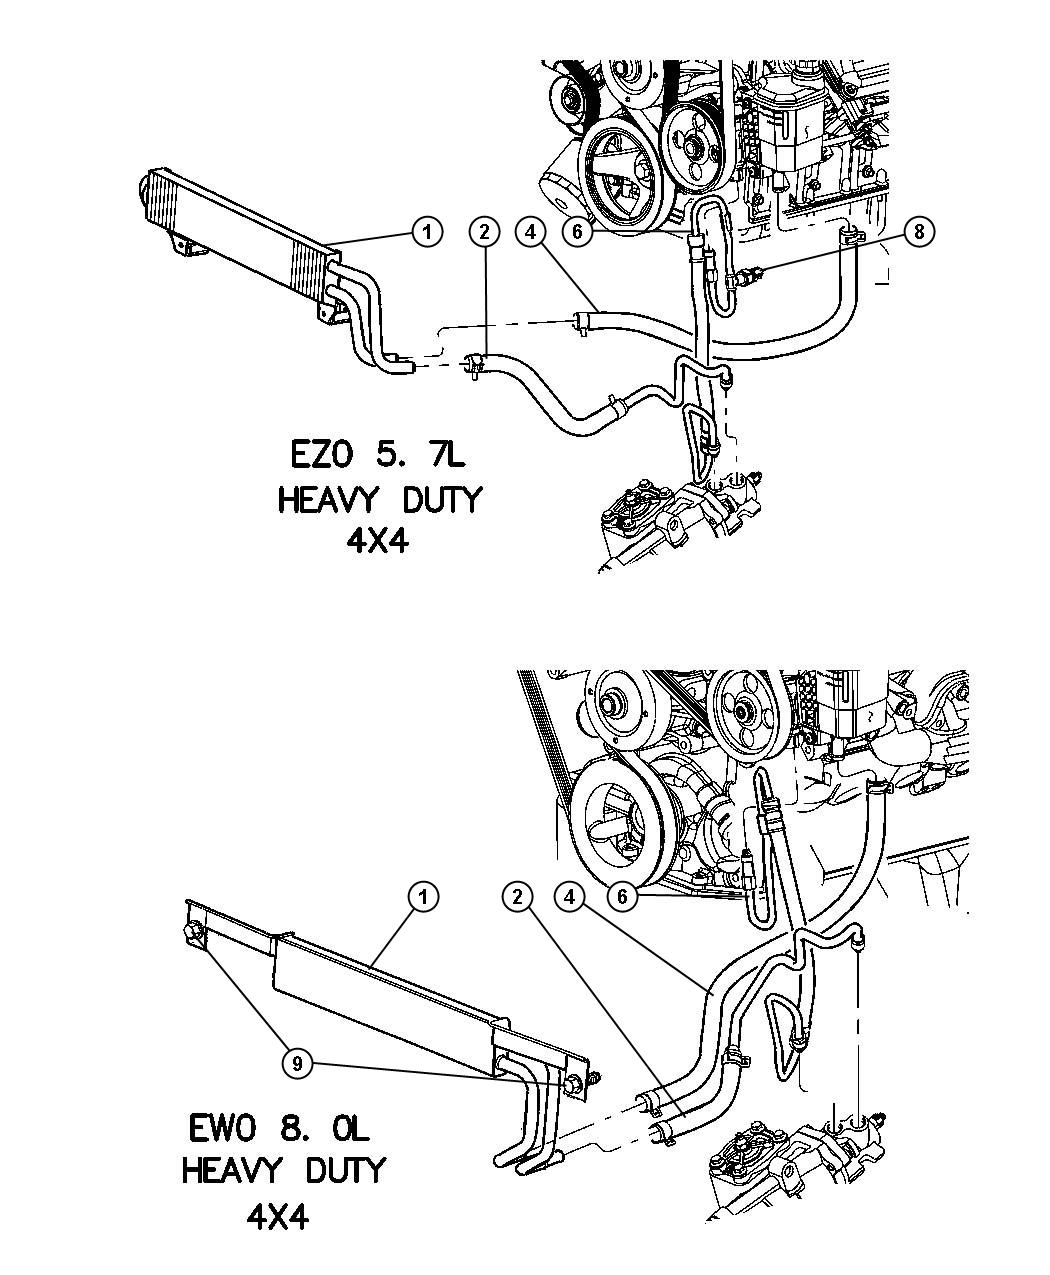 Hoses Power Steering 4 Wheel Drive Without Hydrobooster